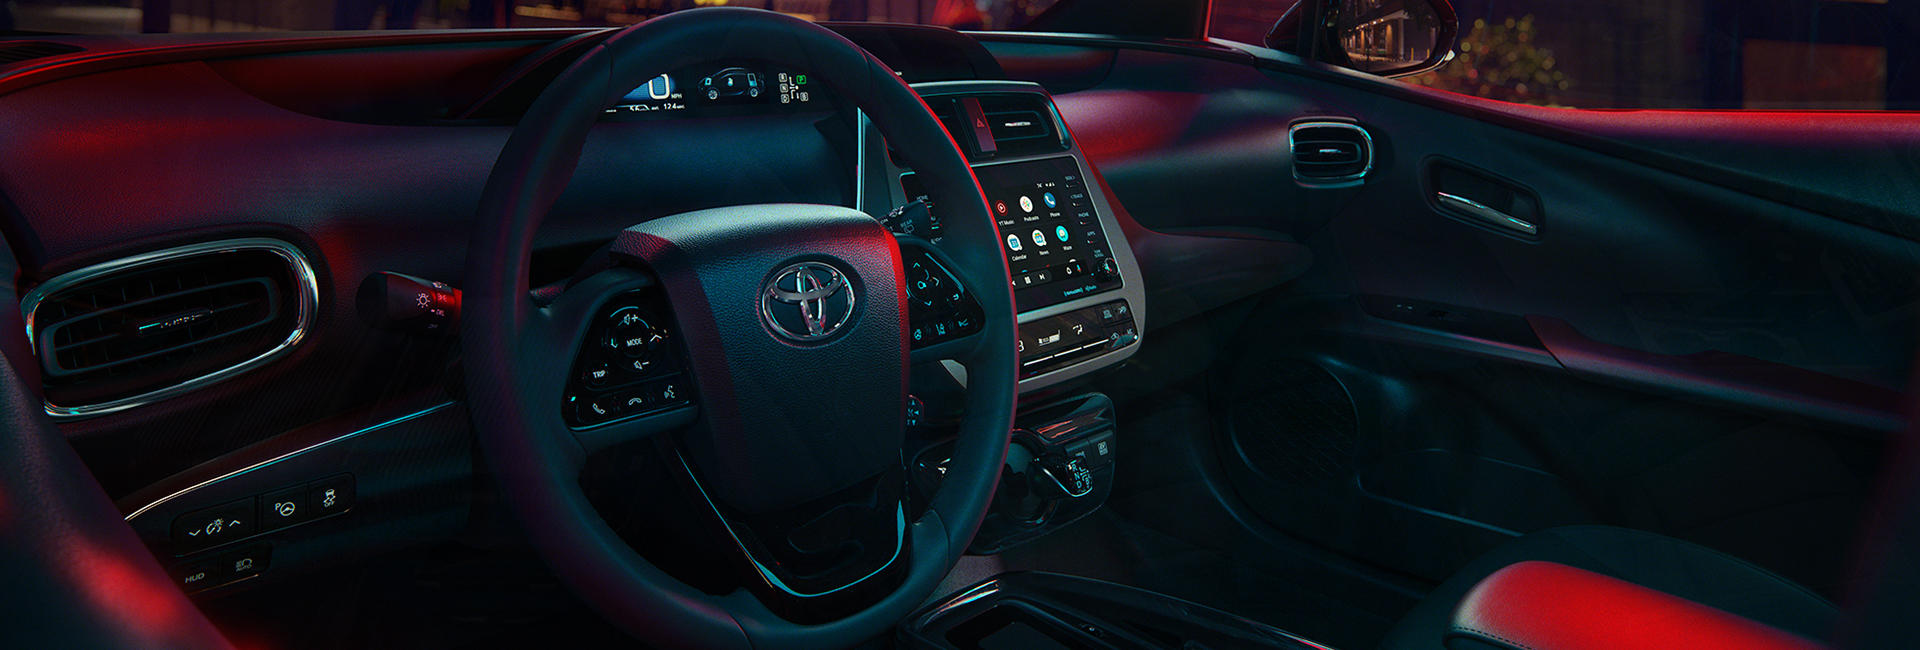 Interior view of the 2021 Prius.